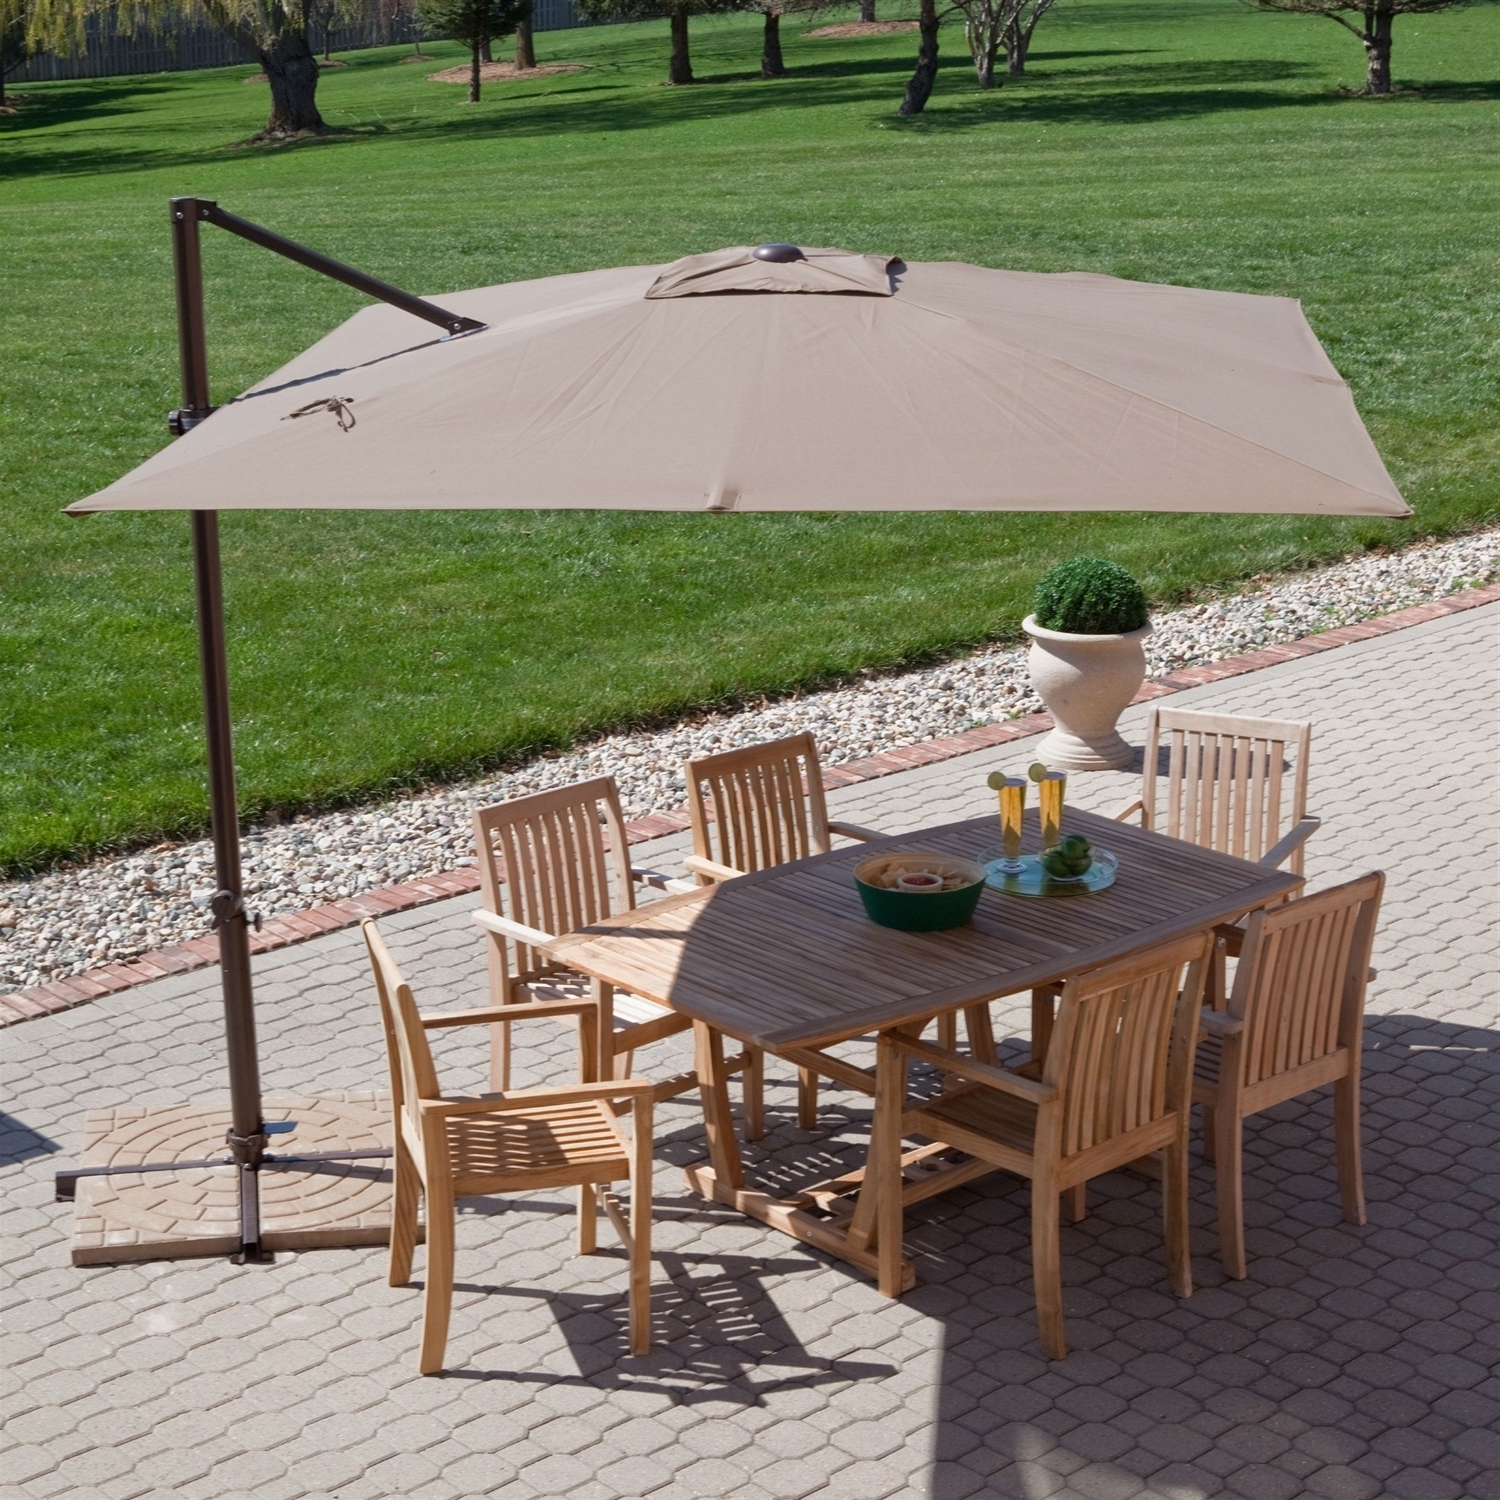 Trendy A Guide To Buying Offset Patio Umbrella – Blogbeen Pertaining To Offset Patio Umbrellas (View 5 of 20)